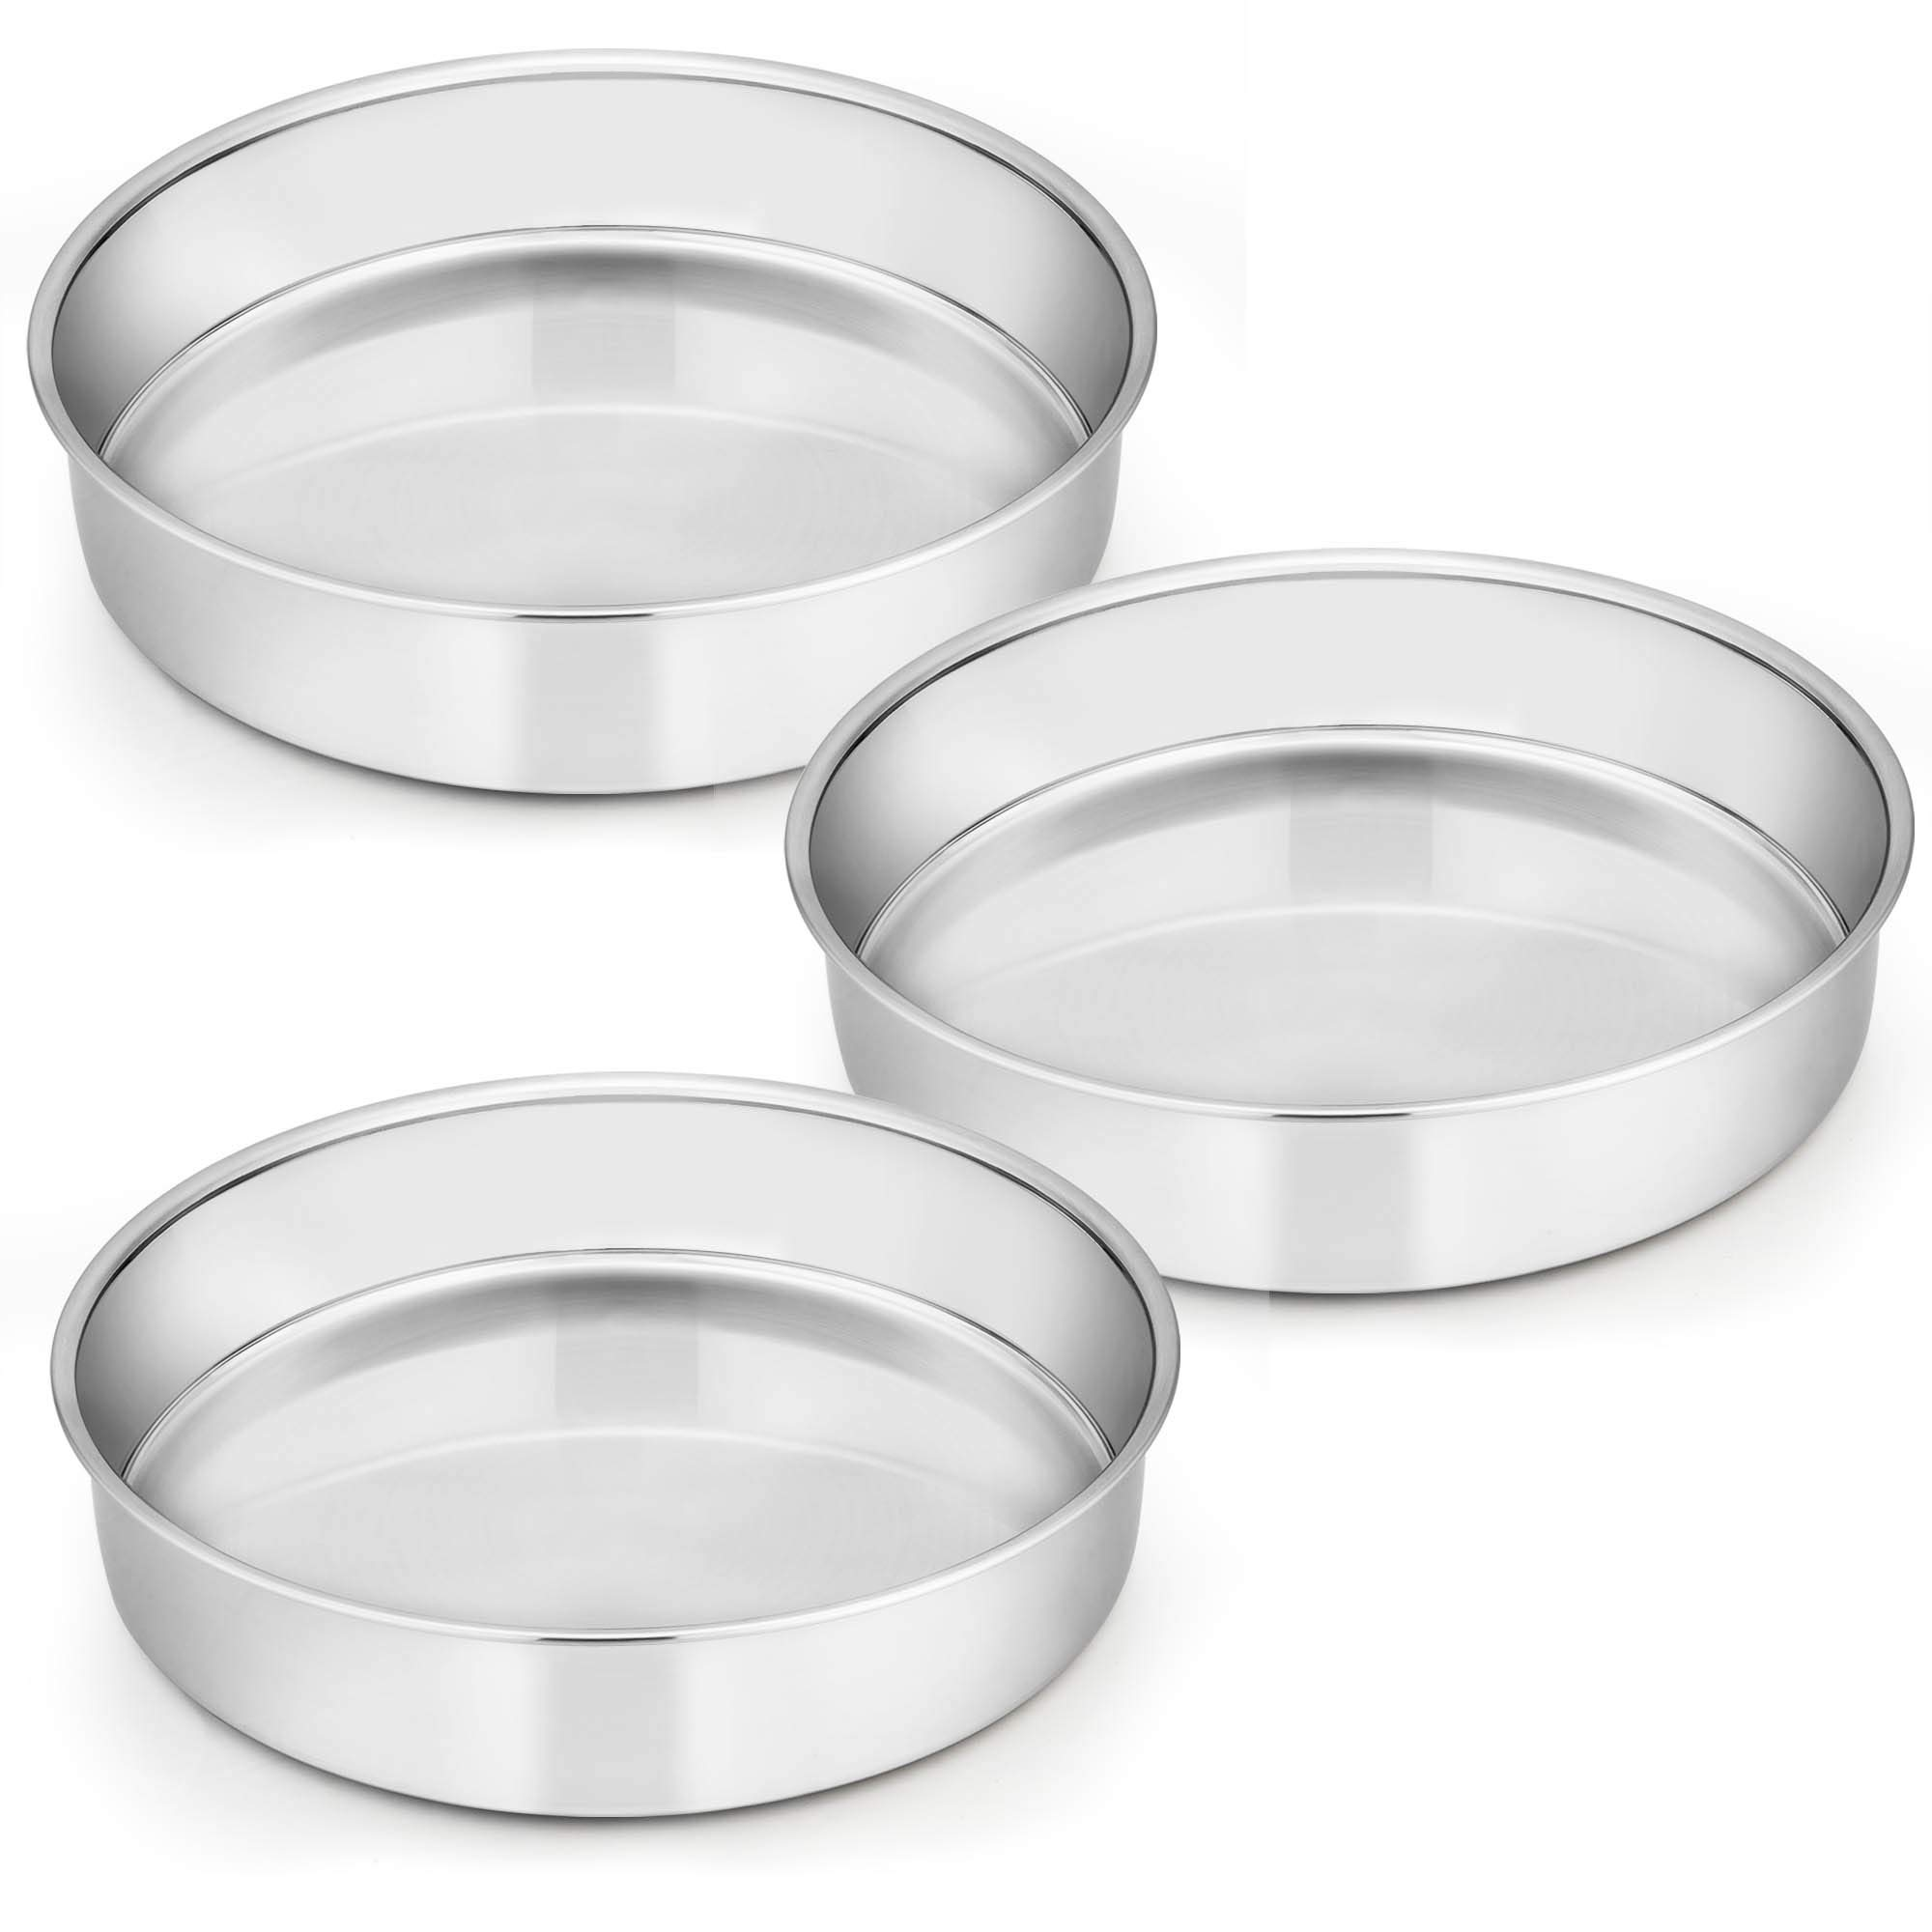 9½ Inch Cake Pan Set of 3, E-far Stainless Steel Round Cake Baking Pans, Non-Toxic & Healthy, Mirror Finish & Dishwasher Safe by E-far